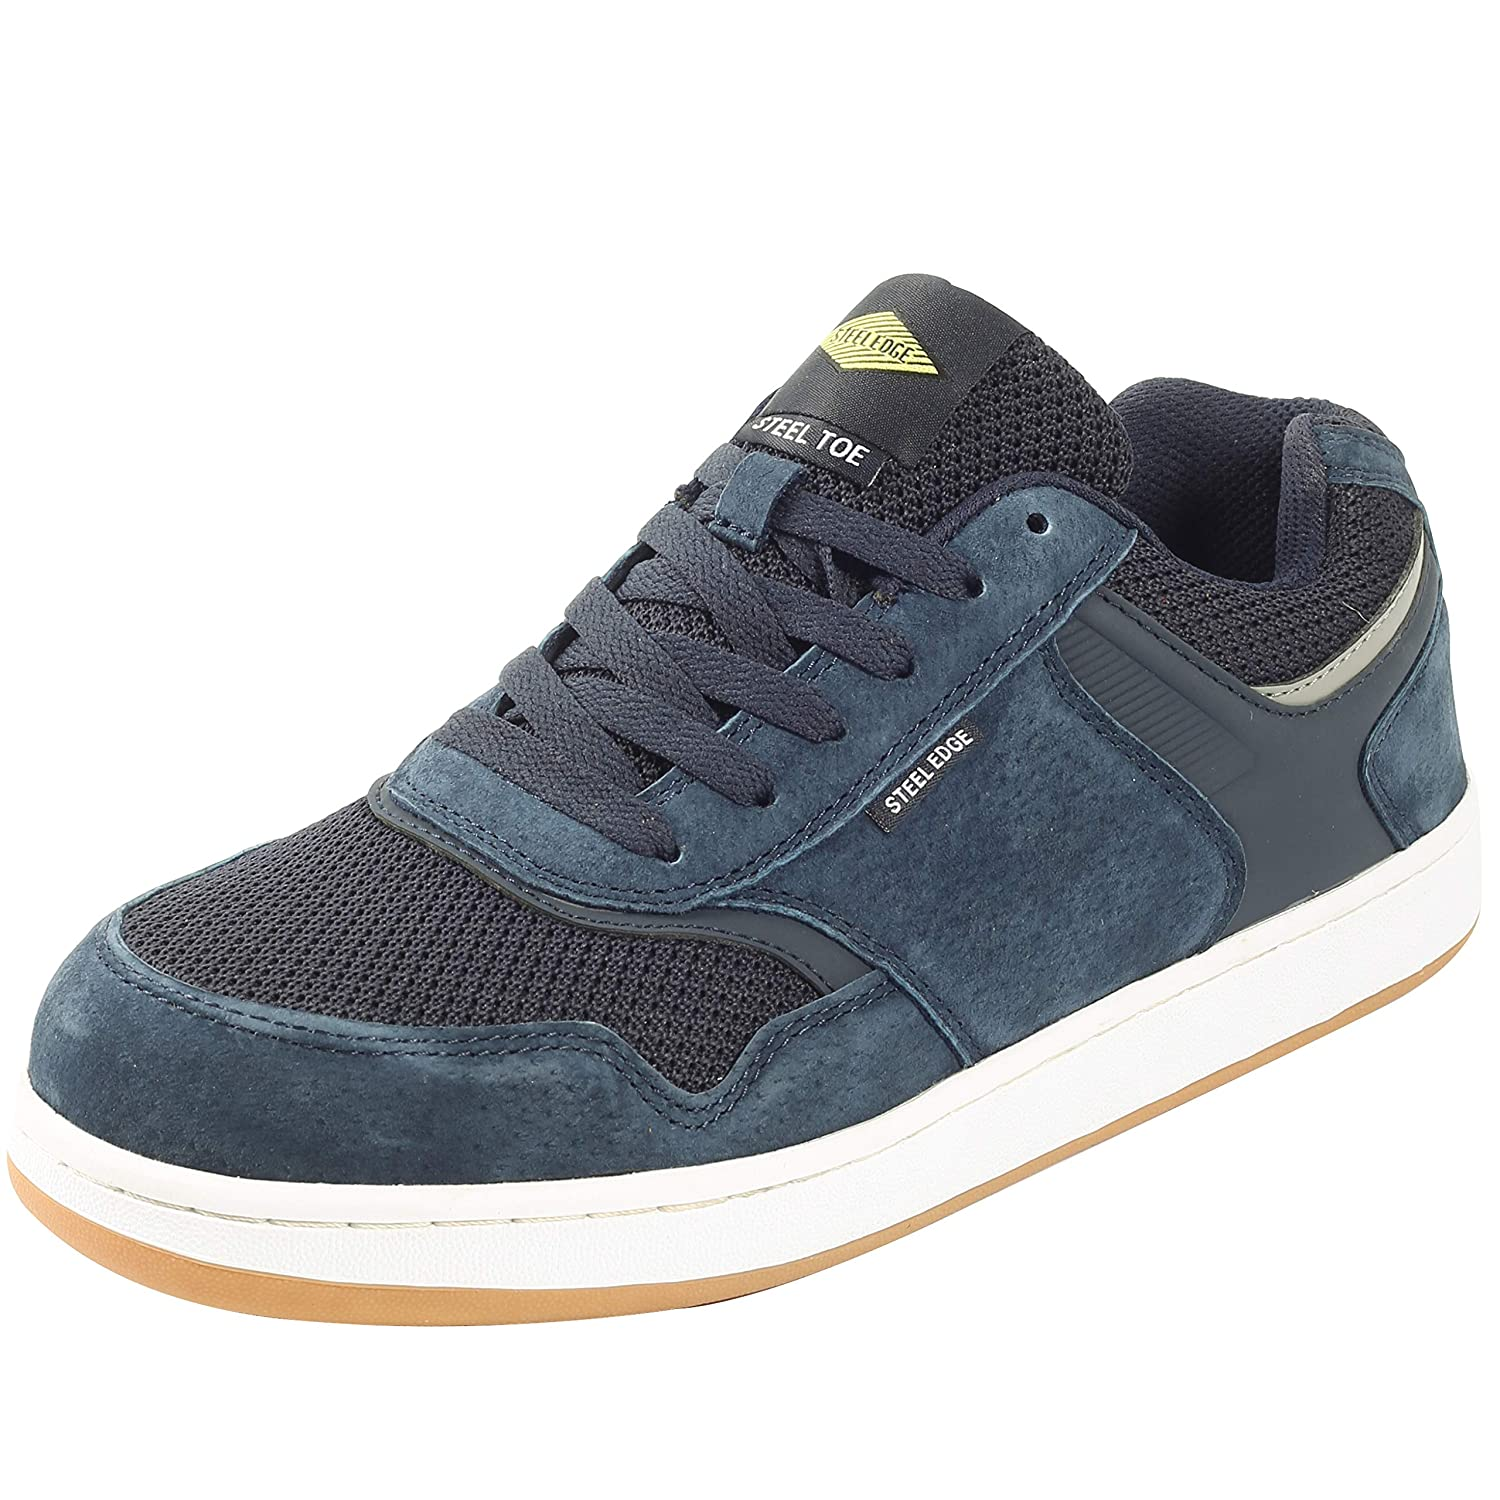 Safety Toe Athletic Shoes - Skater Style, Steel Toe Shoe Sneakers - Blue